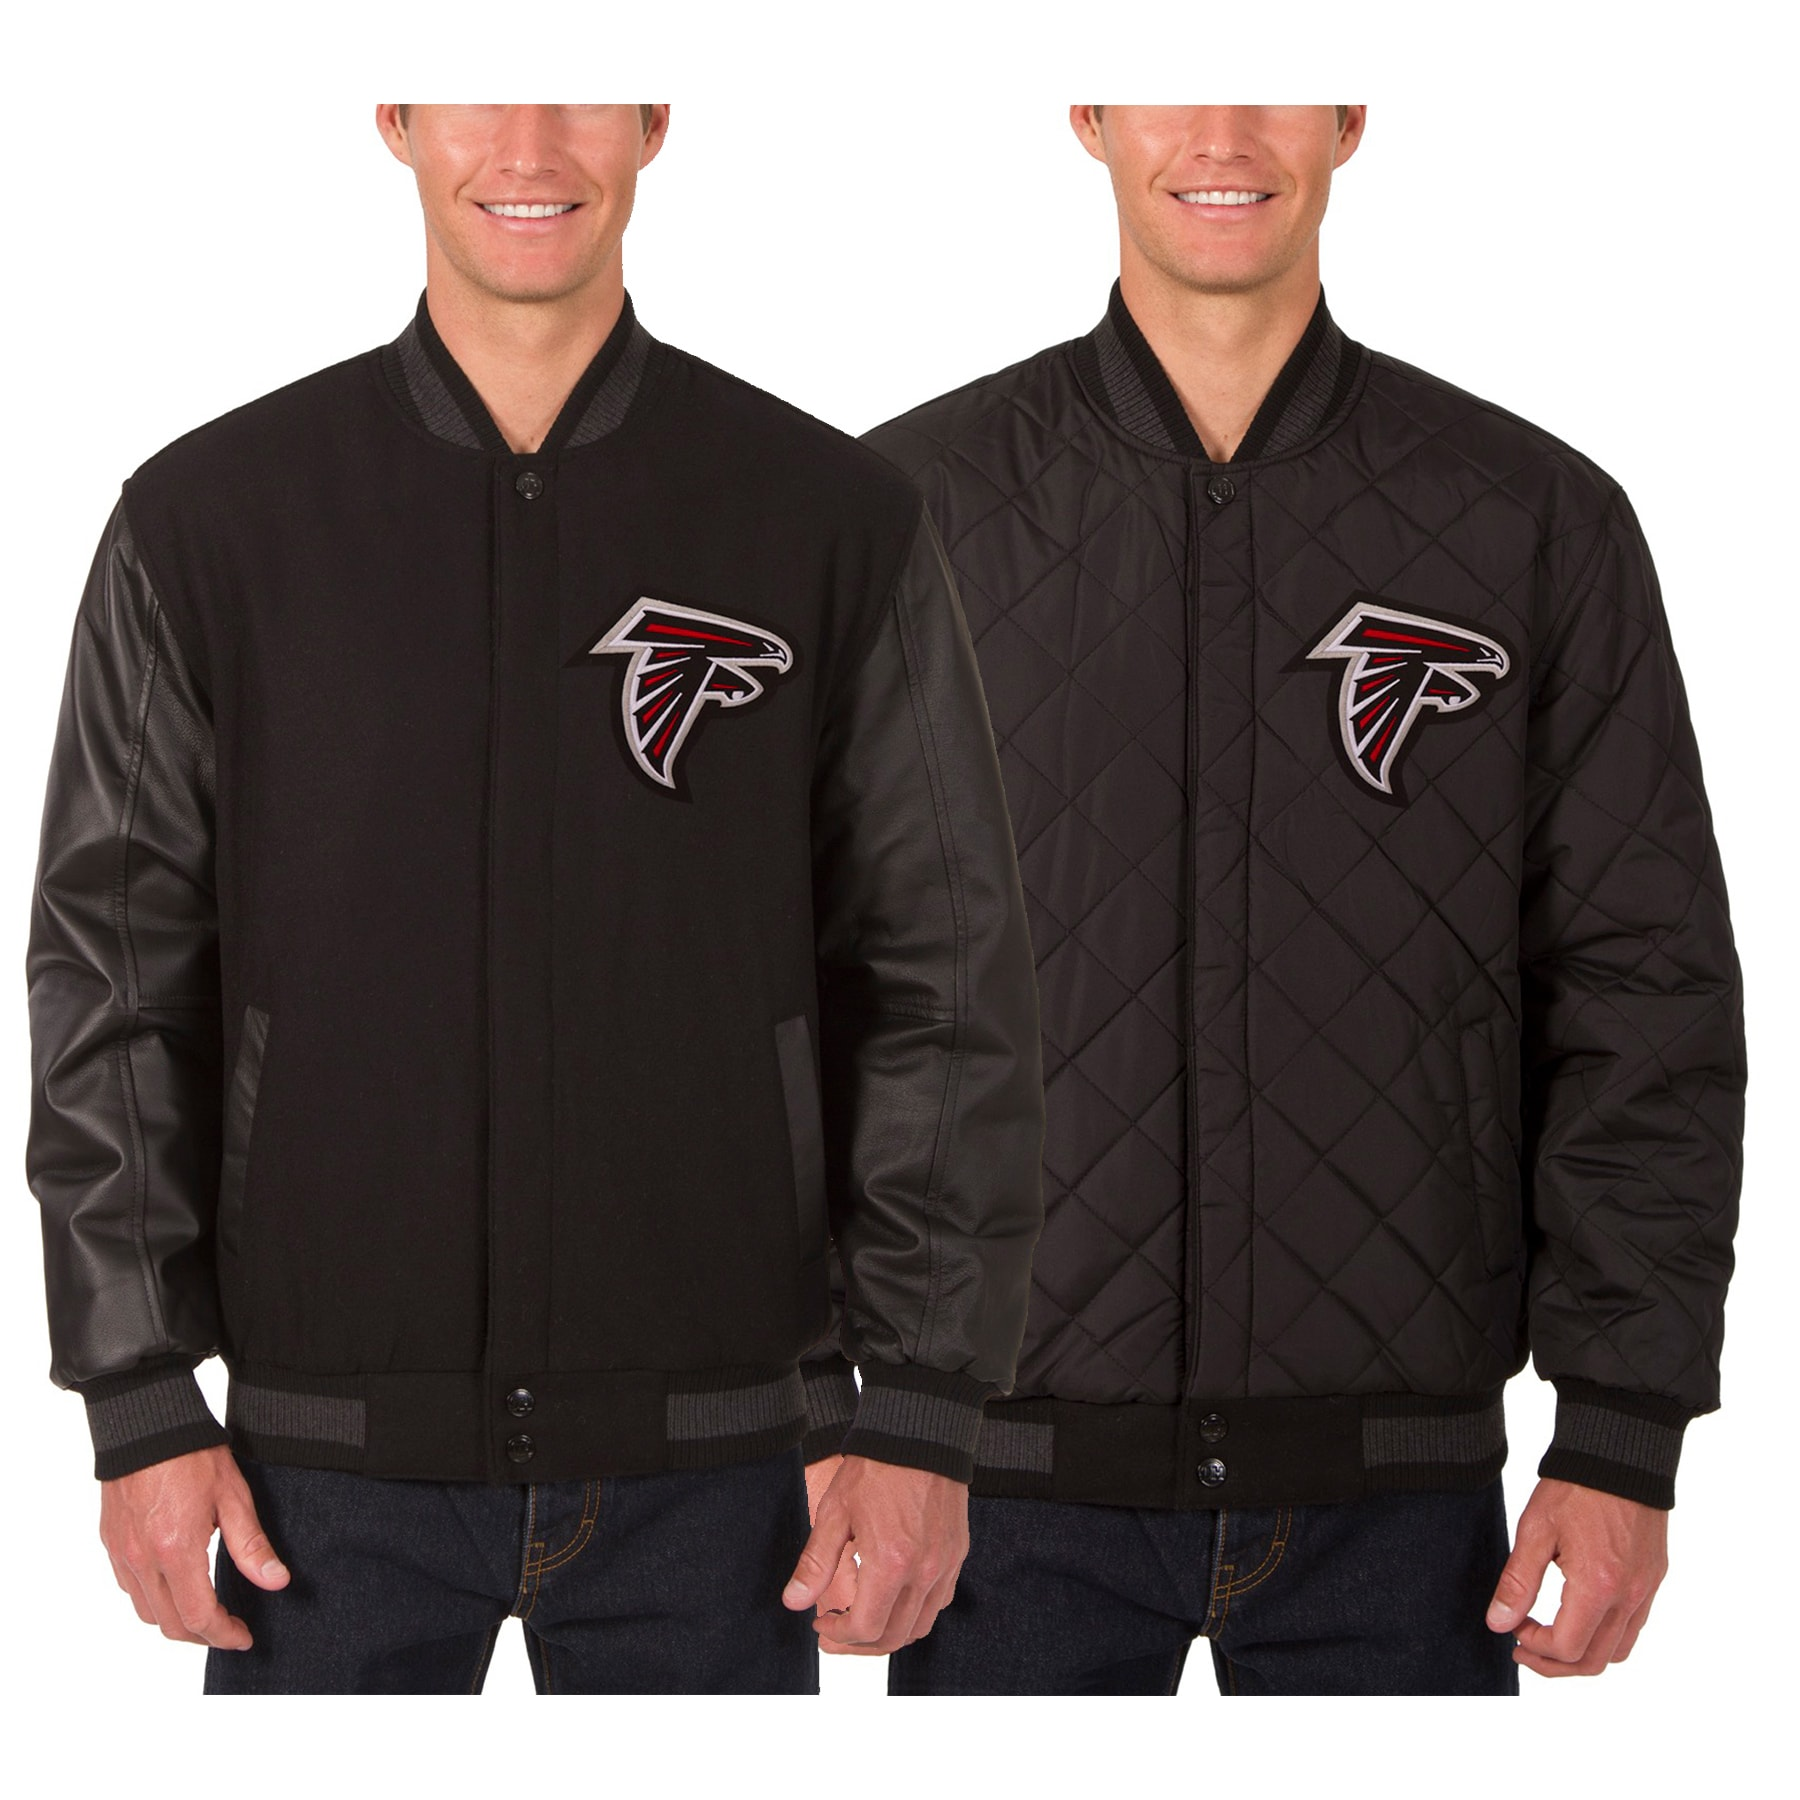 Atlanta Falcons JH Design Wool & Leather Reversible Jacket with Embroidered Logos - Black